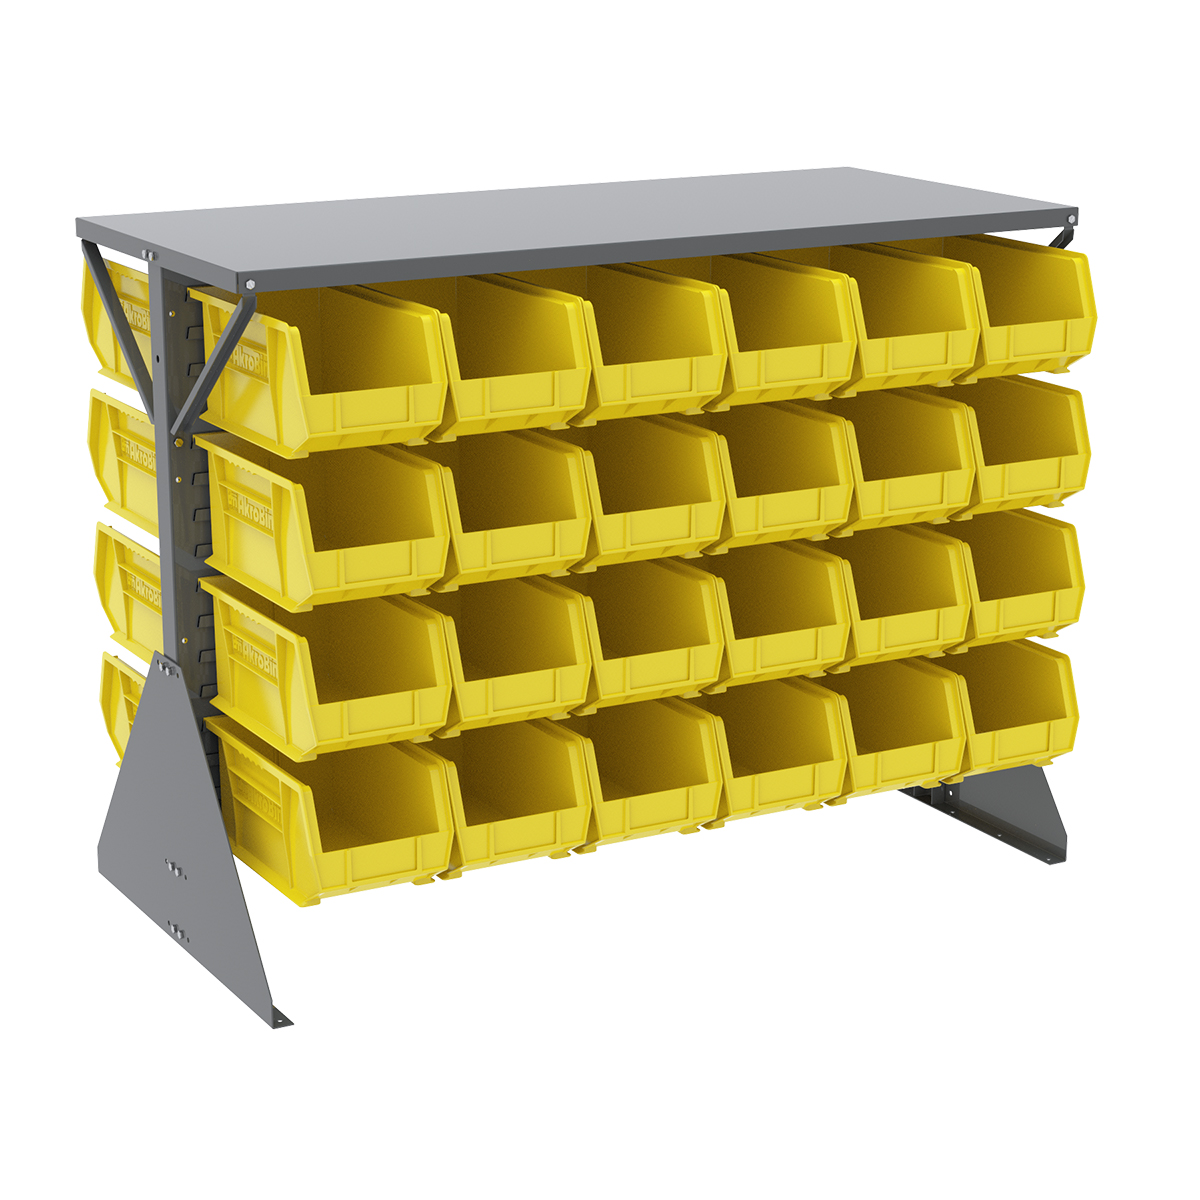 Item DISCONTINUED by Manufacturer.  Low Profile Floor Rack, 2-Sided, Shelf w/ 48 AkroBins, Gray/Yellow (30606GY240Y).  This item sold in carton quantities of 1.